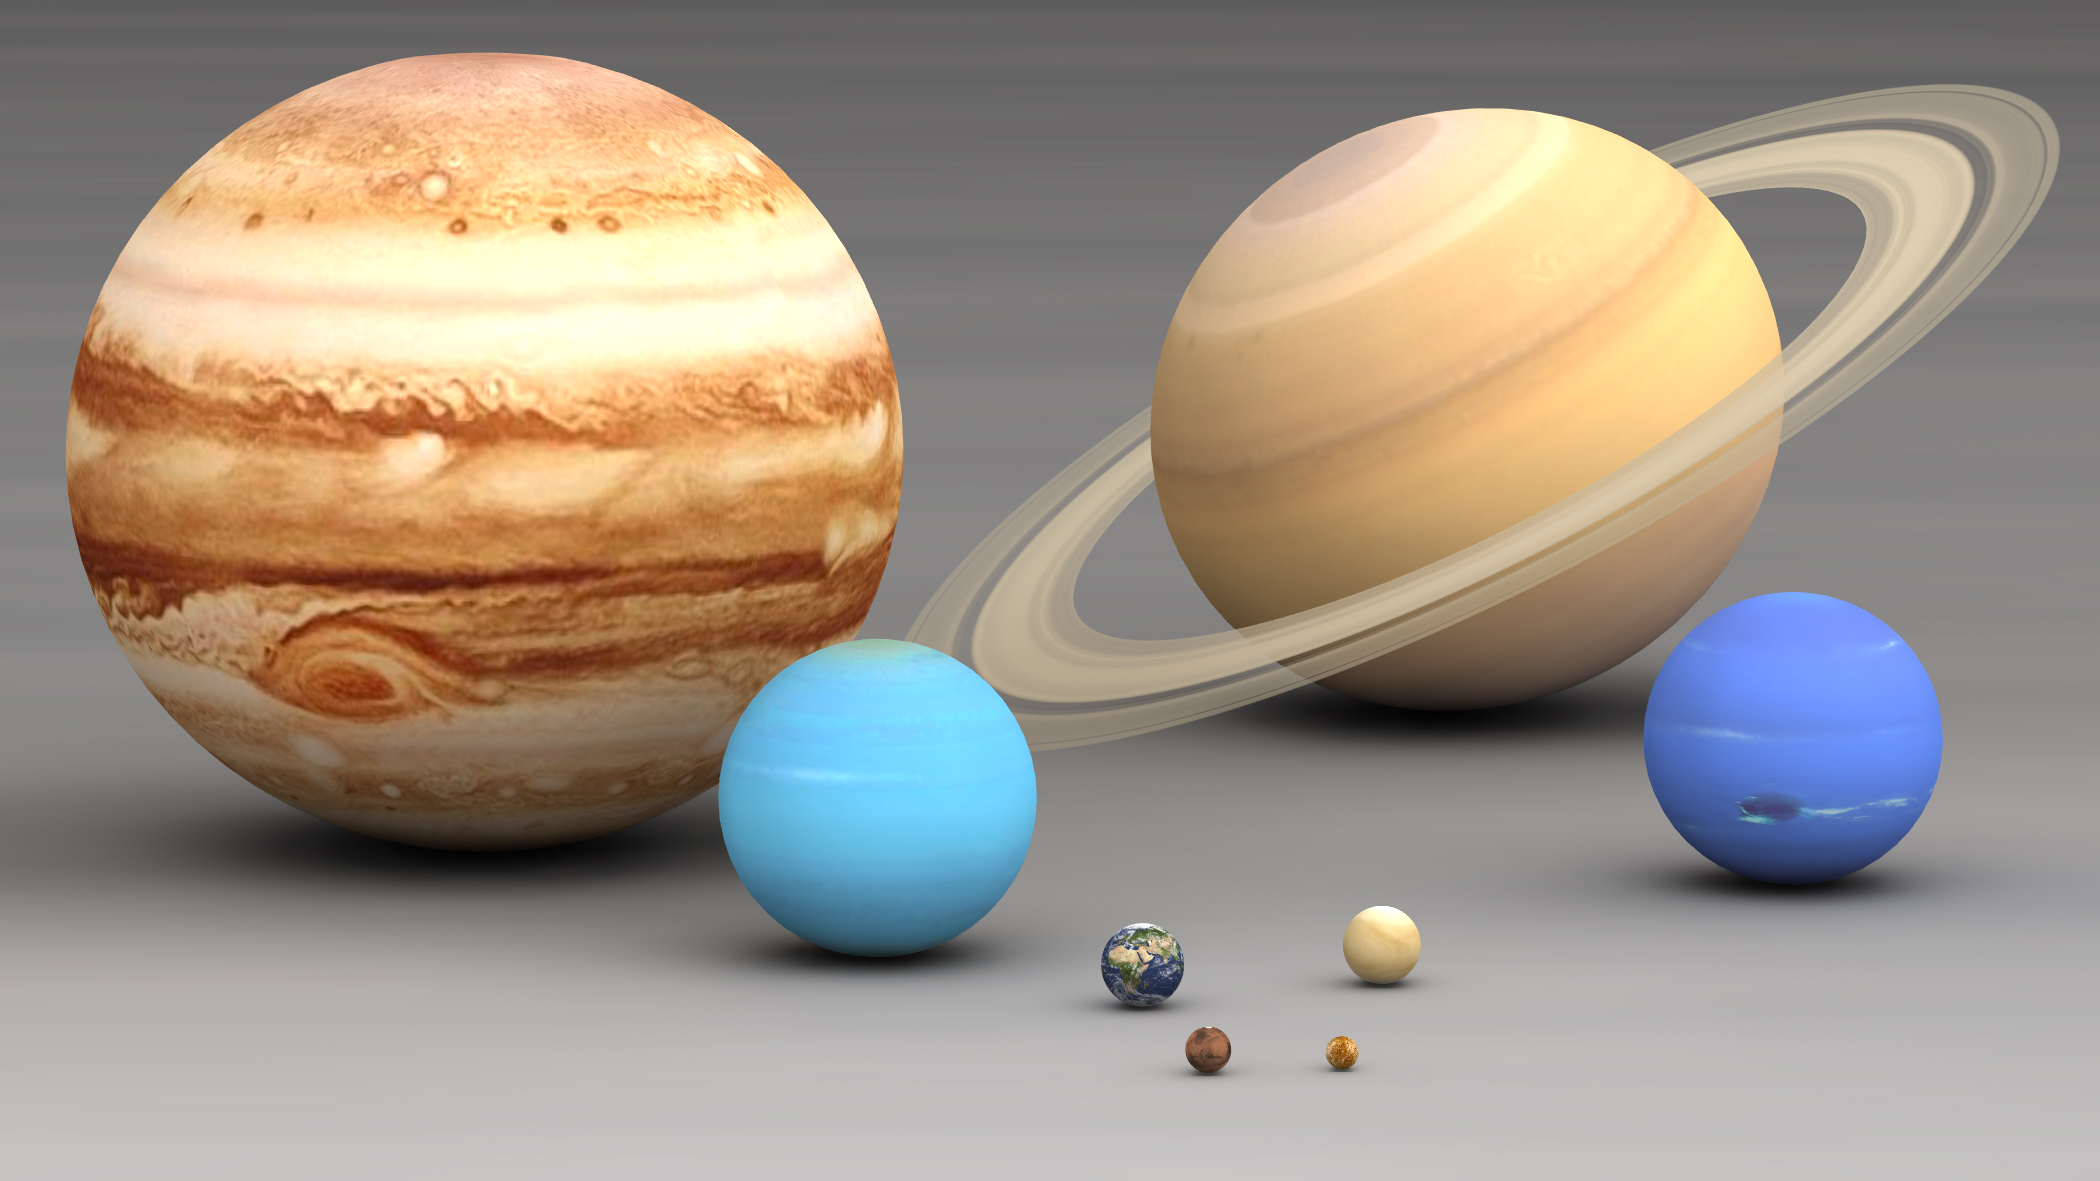 List of Solar System objects by size